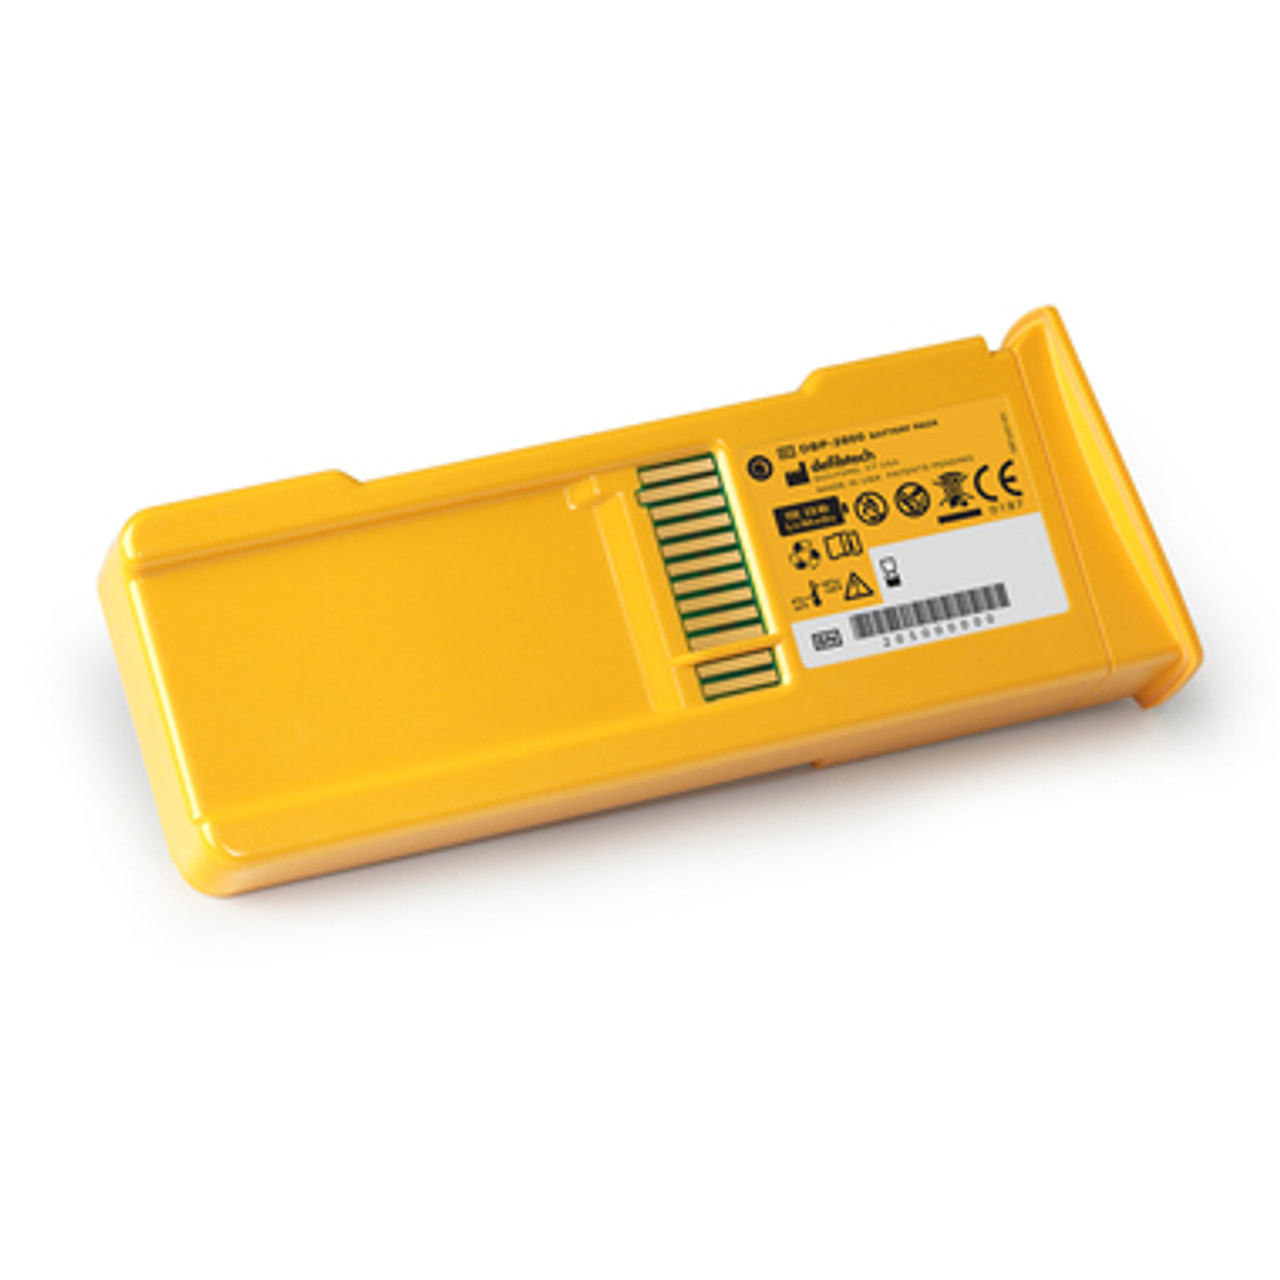 Defibtech 7 Year Battery Pack with 9V Lithium Battery